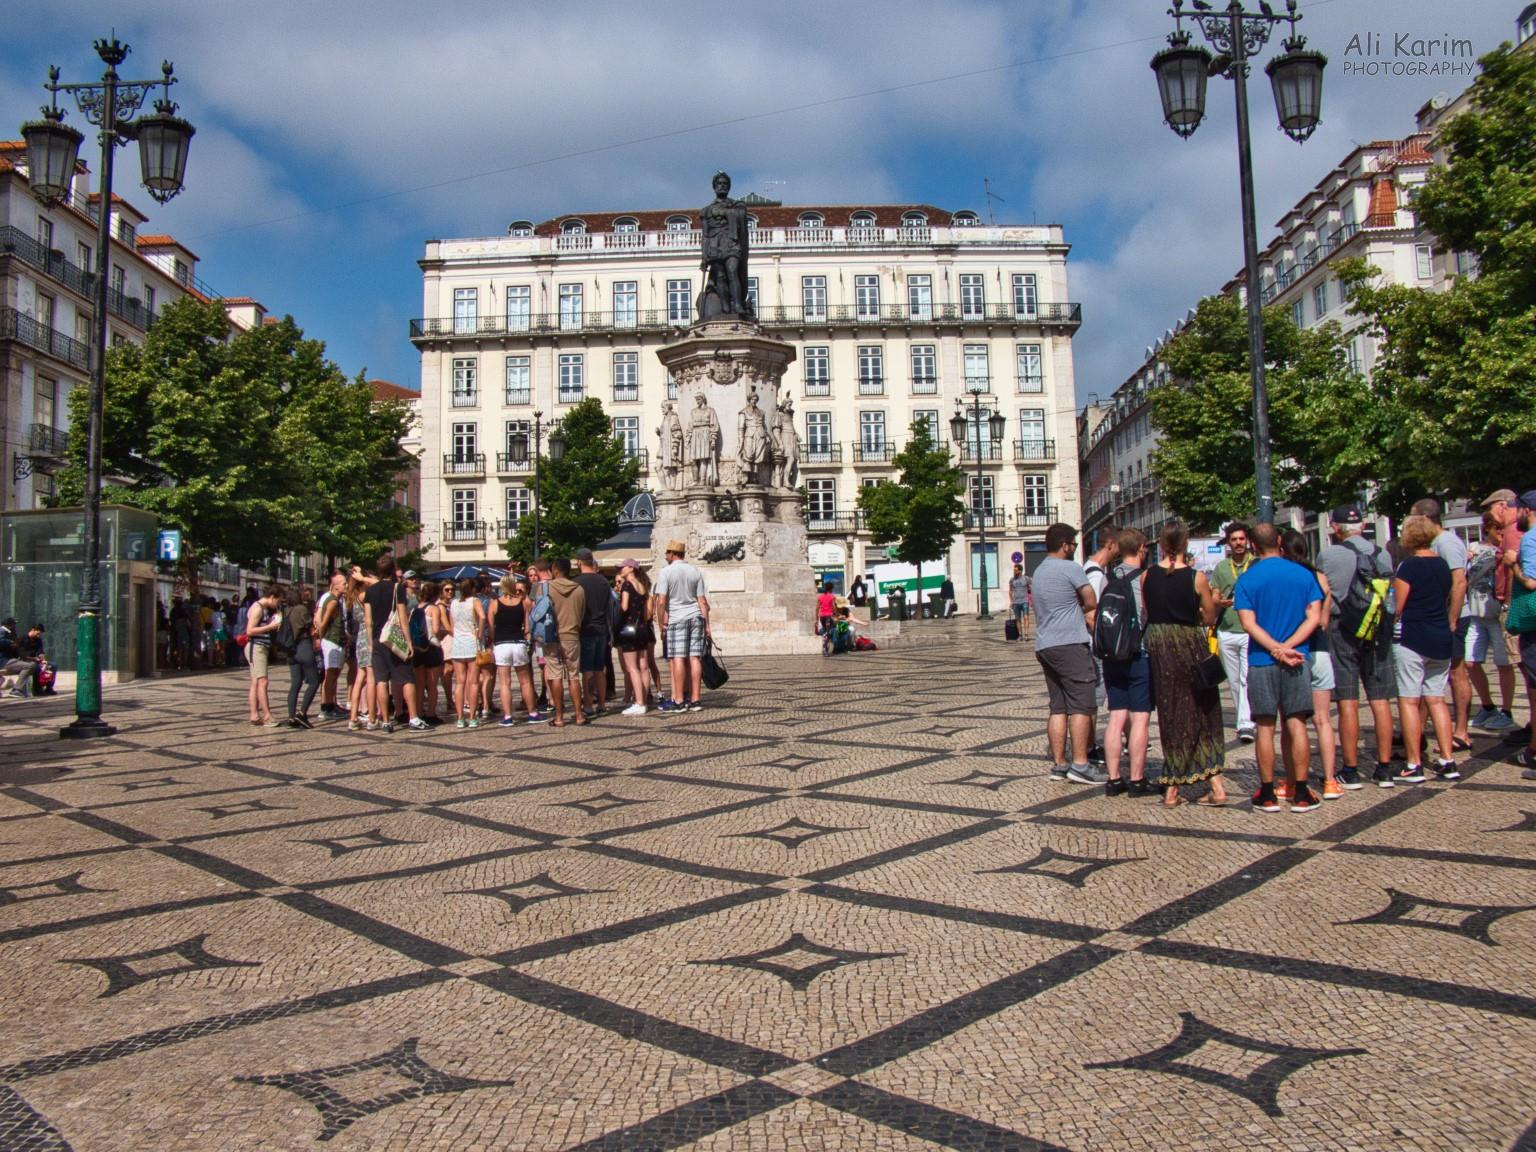 The Praça Luís de Camões; a popular tourist meeting place for guided walking tours